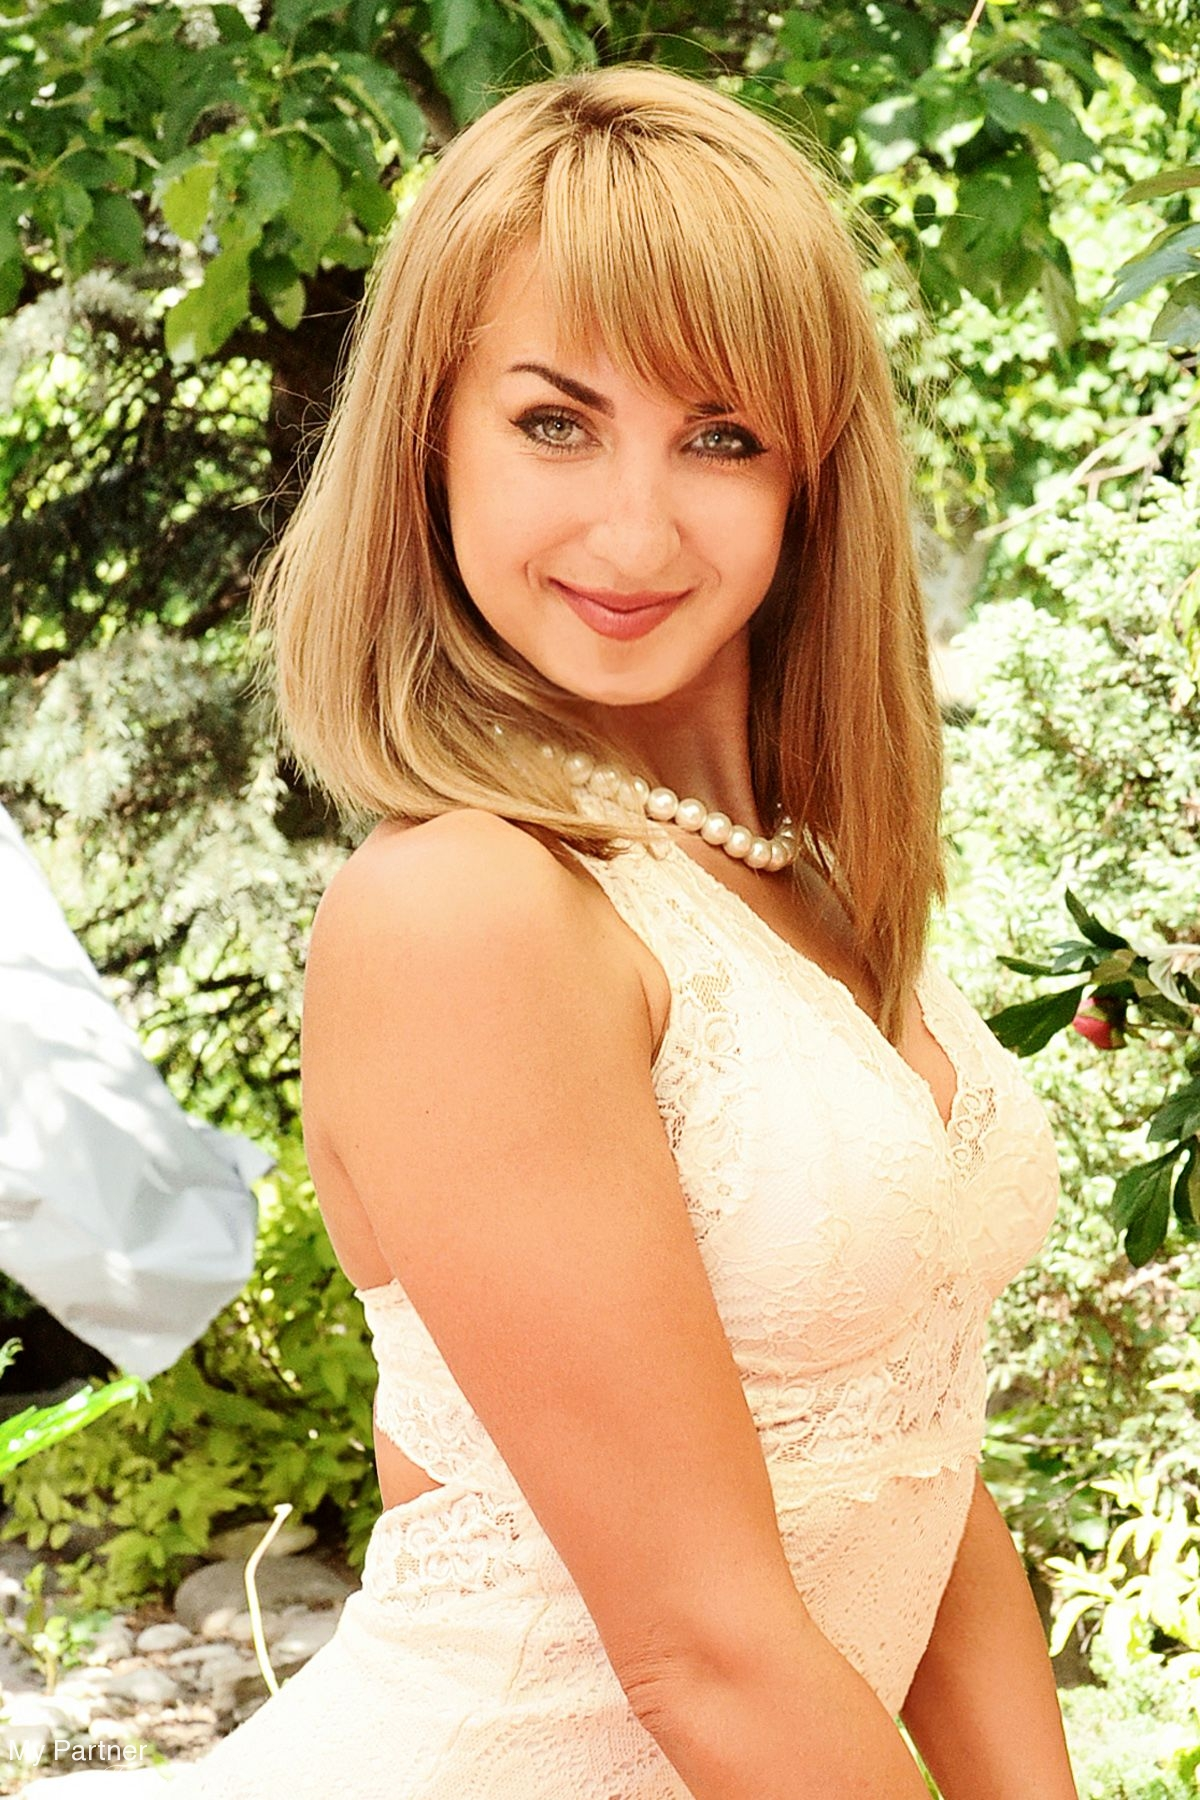 Ukrainian Women Dating - Meet Irina from Kharkov, Ukraine